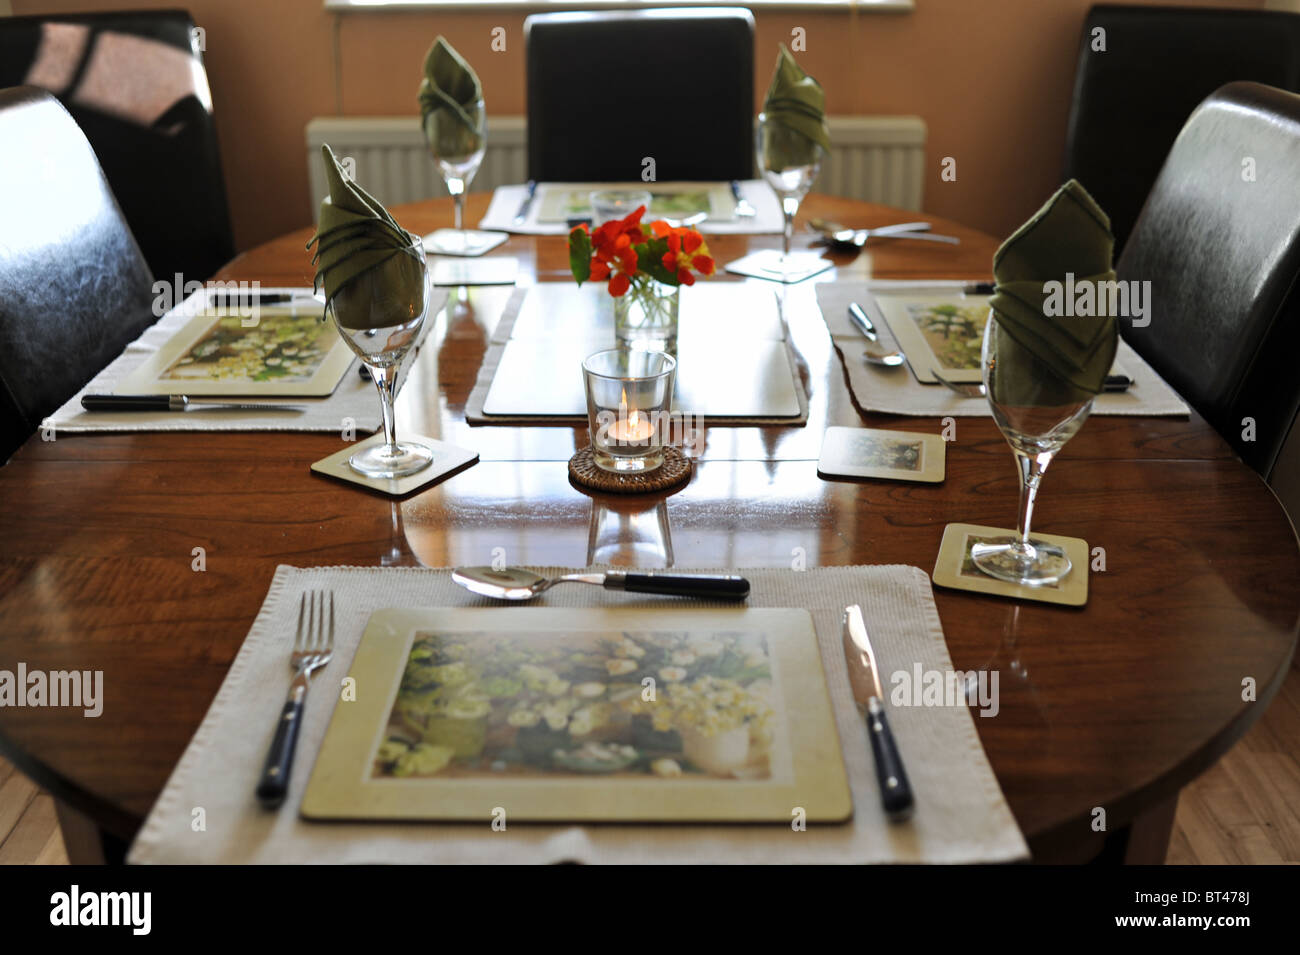 Table laid out in dining room ready for Sunday lunch Stock  : table laid out in dining room ready for sunday lunch BT478J from www.alamy.com size 1300 x 955 jpeg 136kB